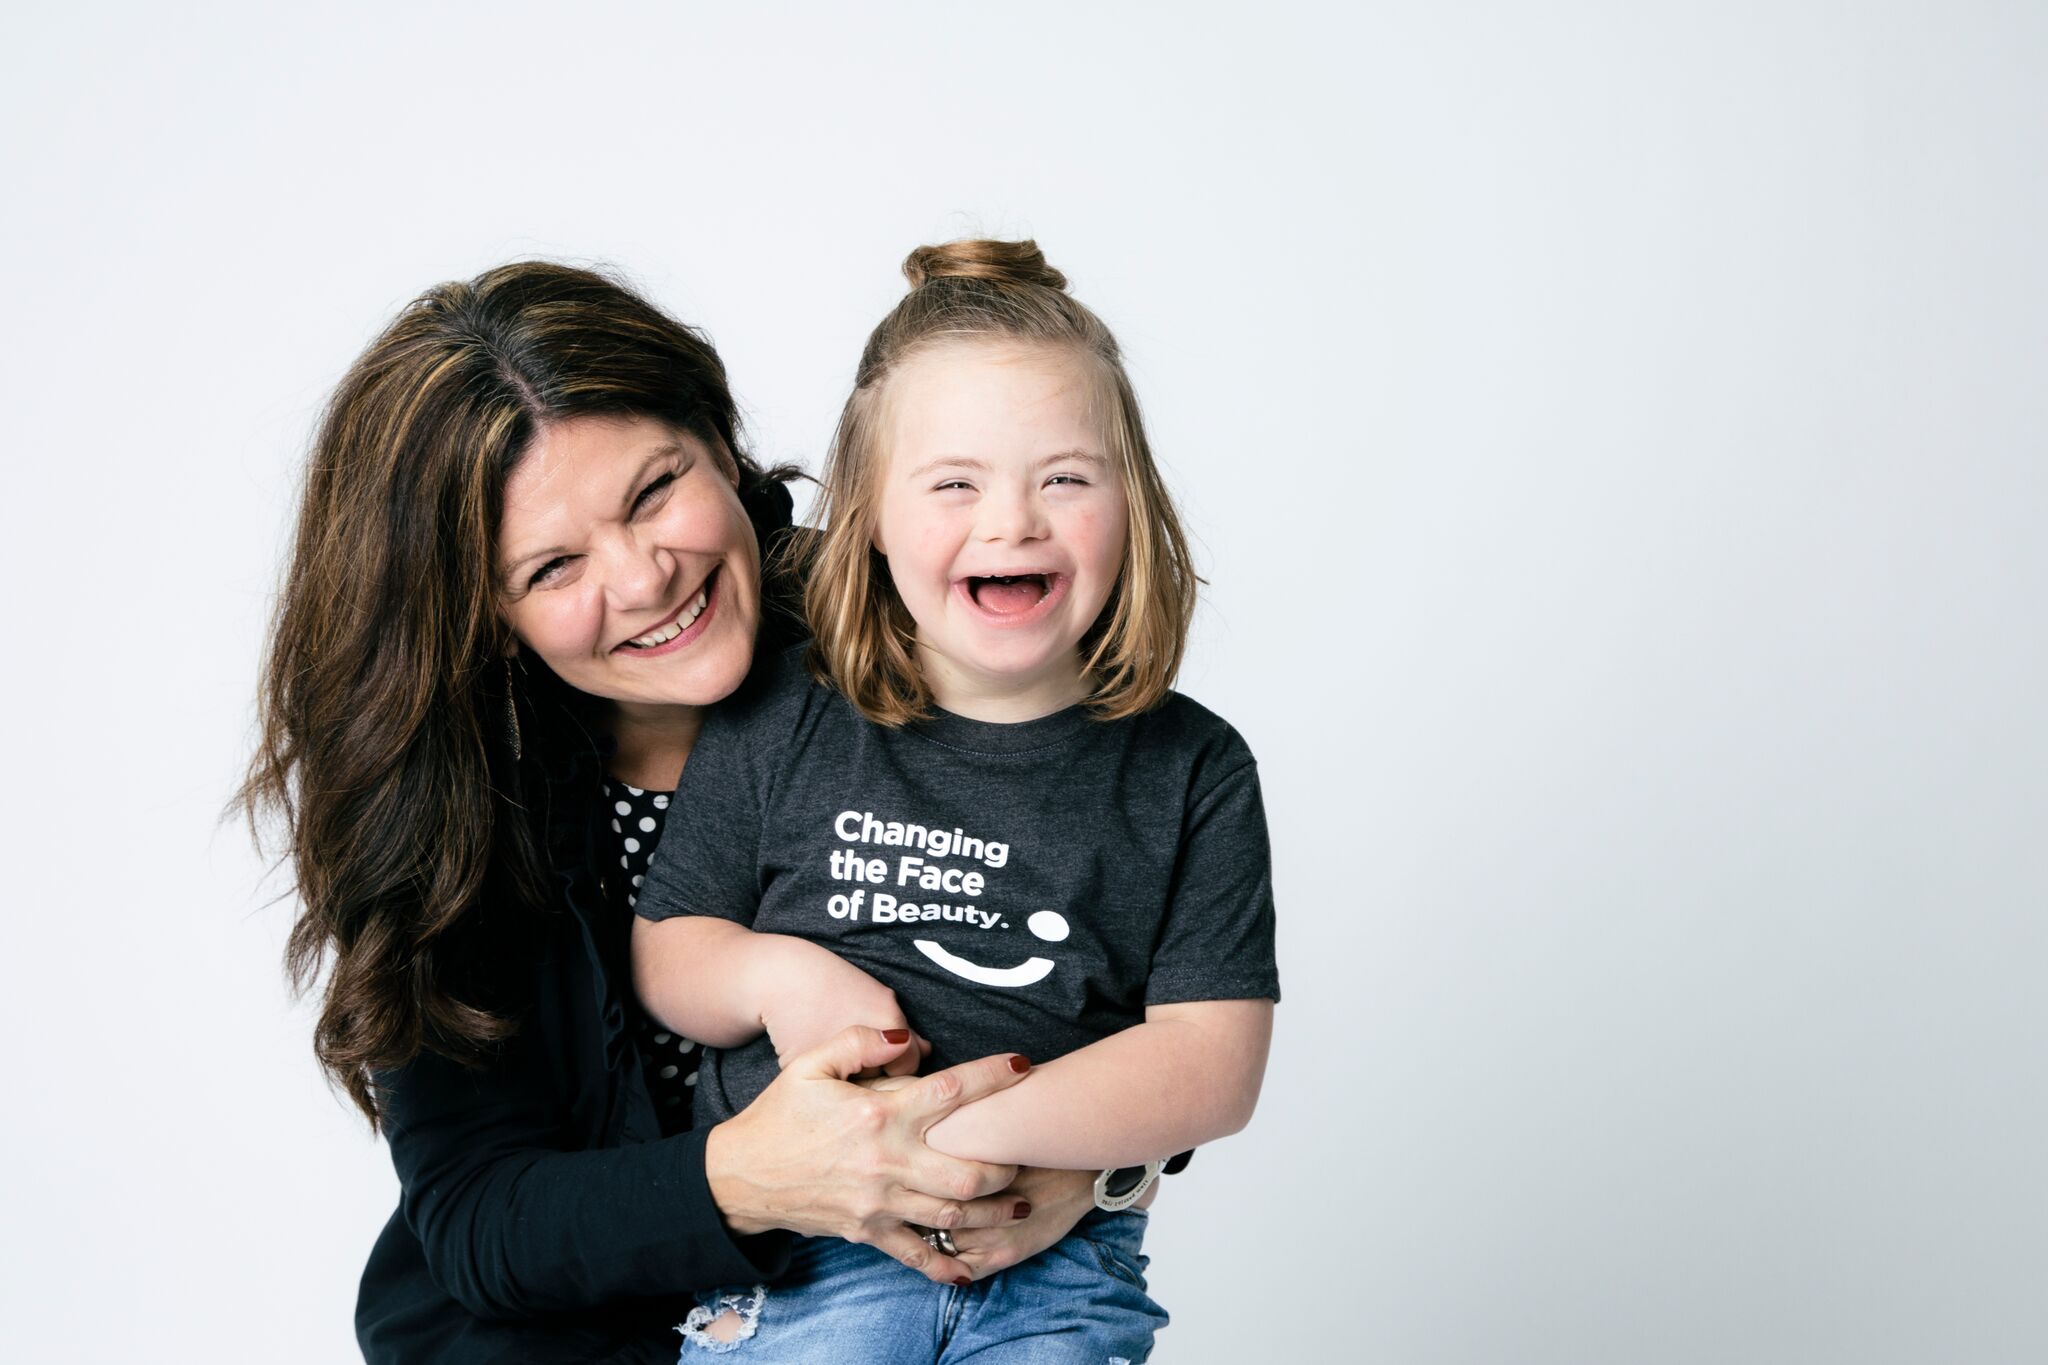 Katie Driscoll and her daughter Grace are changing the face of beauty.